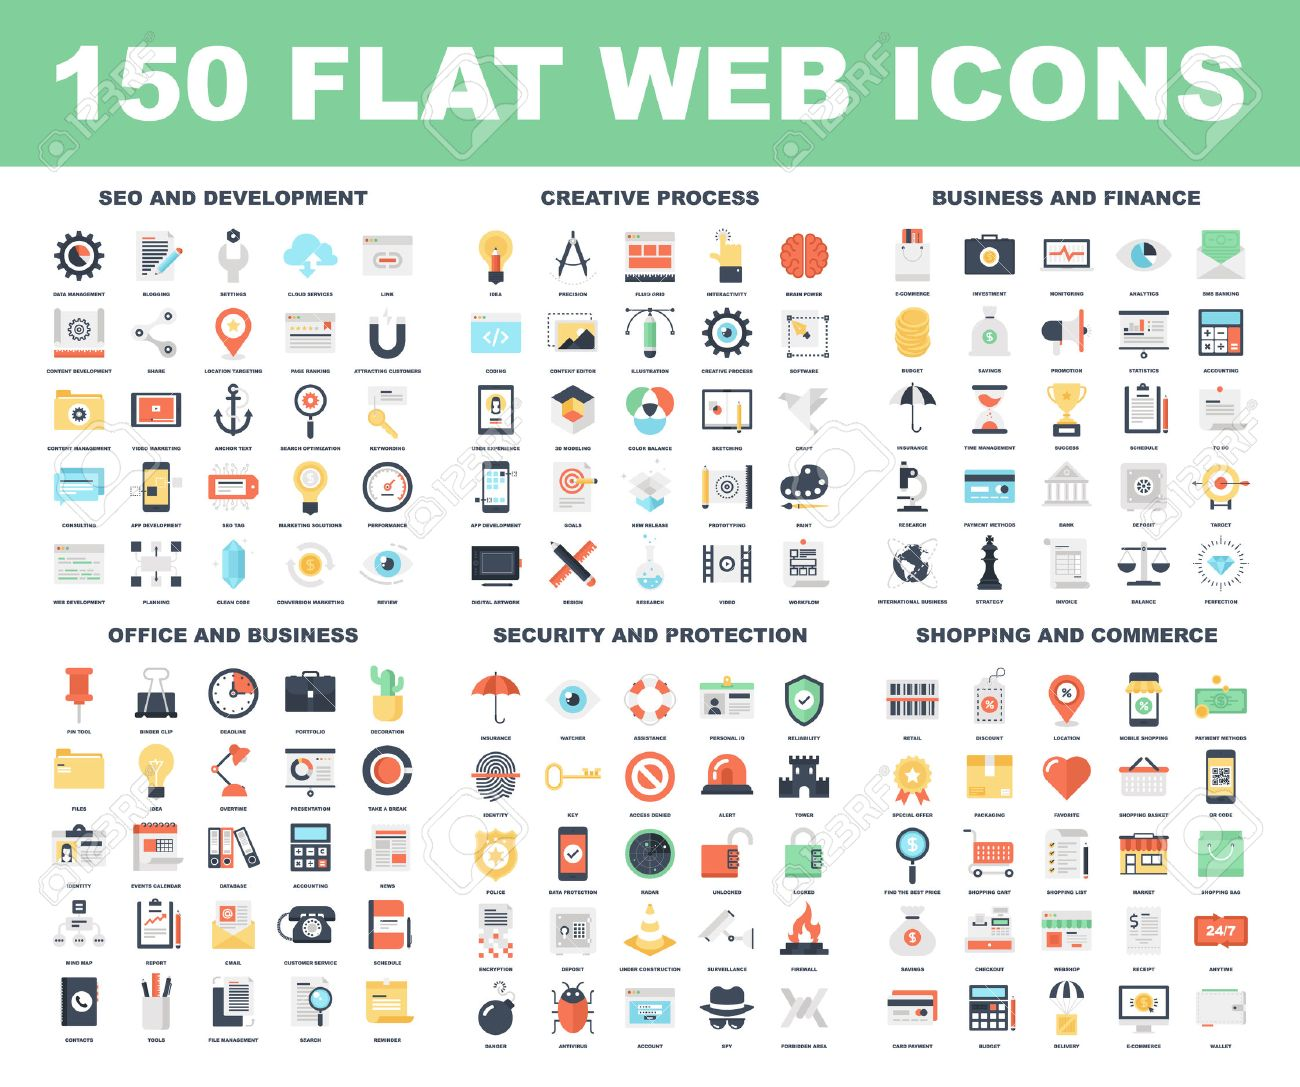 Vector set of 150 flat web icons on following themes - SEO and development, creative process, business and finance, office and business, security and protection, shopping and commerce. Stock Vector - 43549813